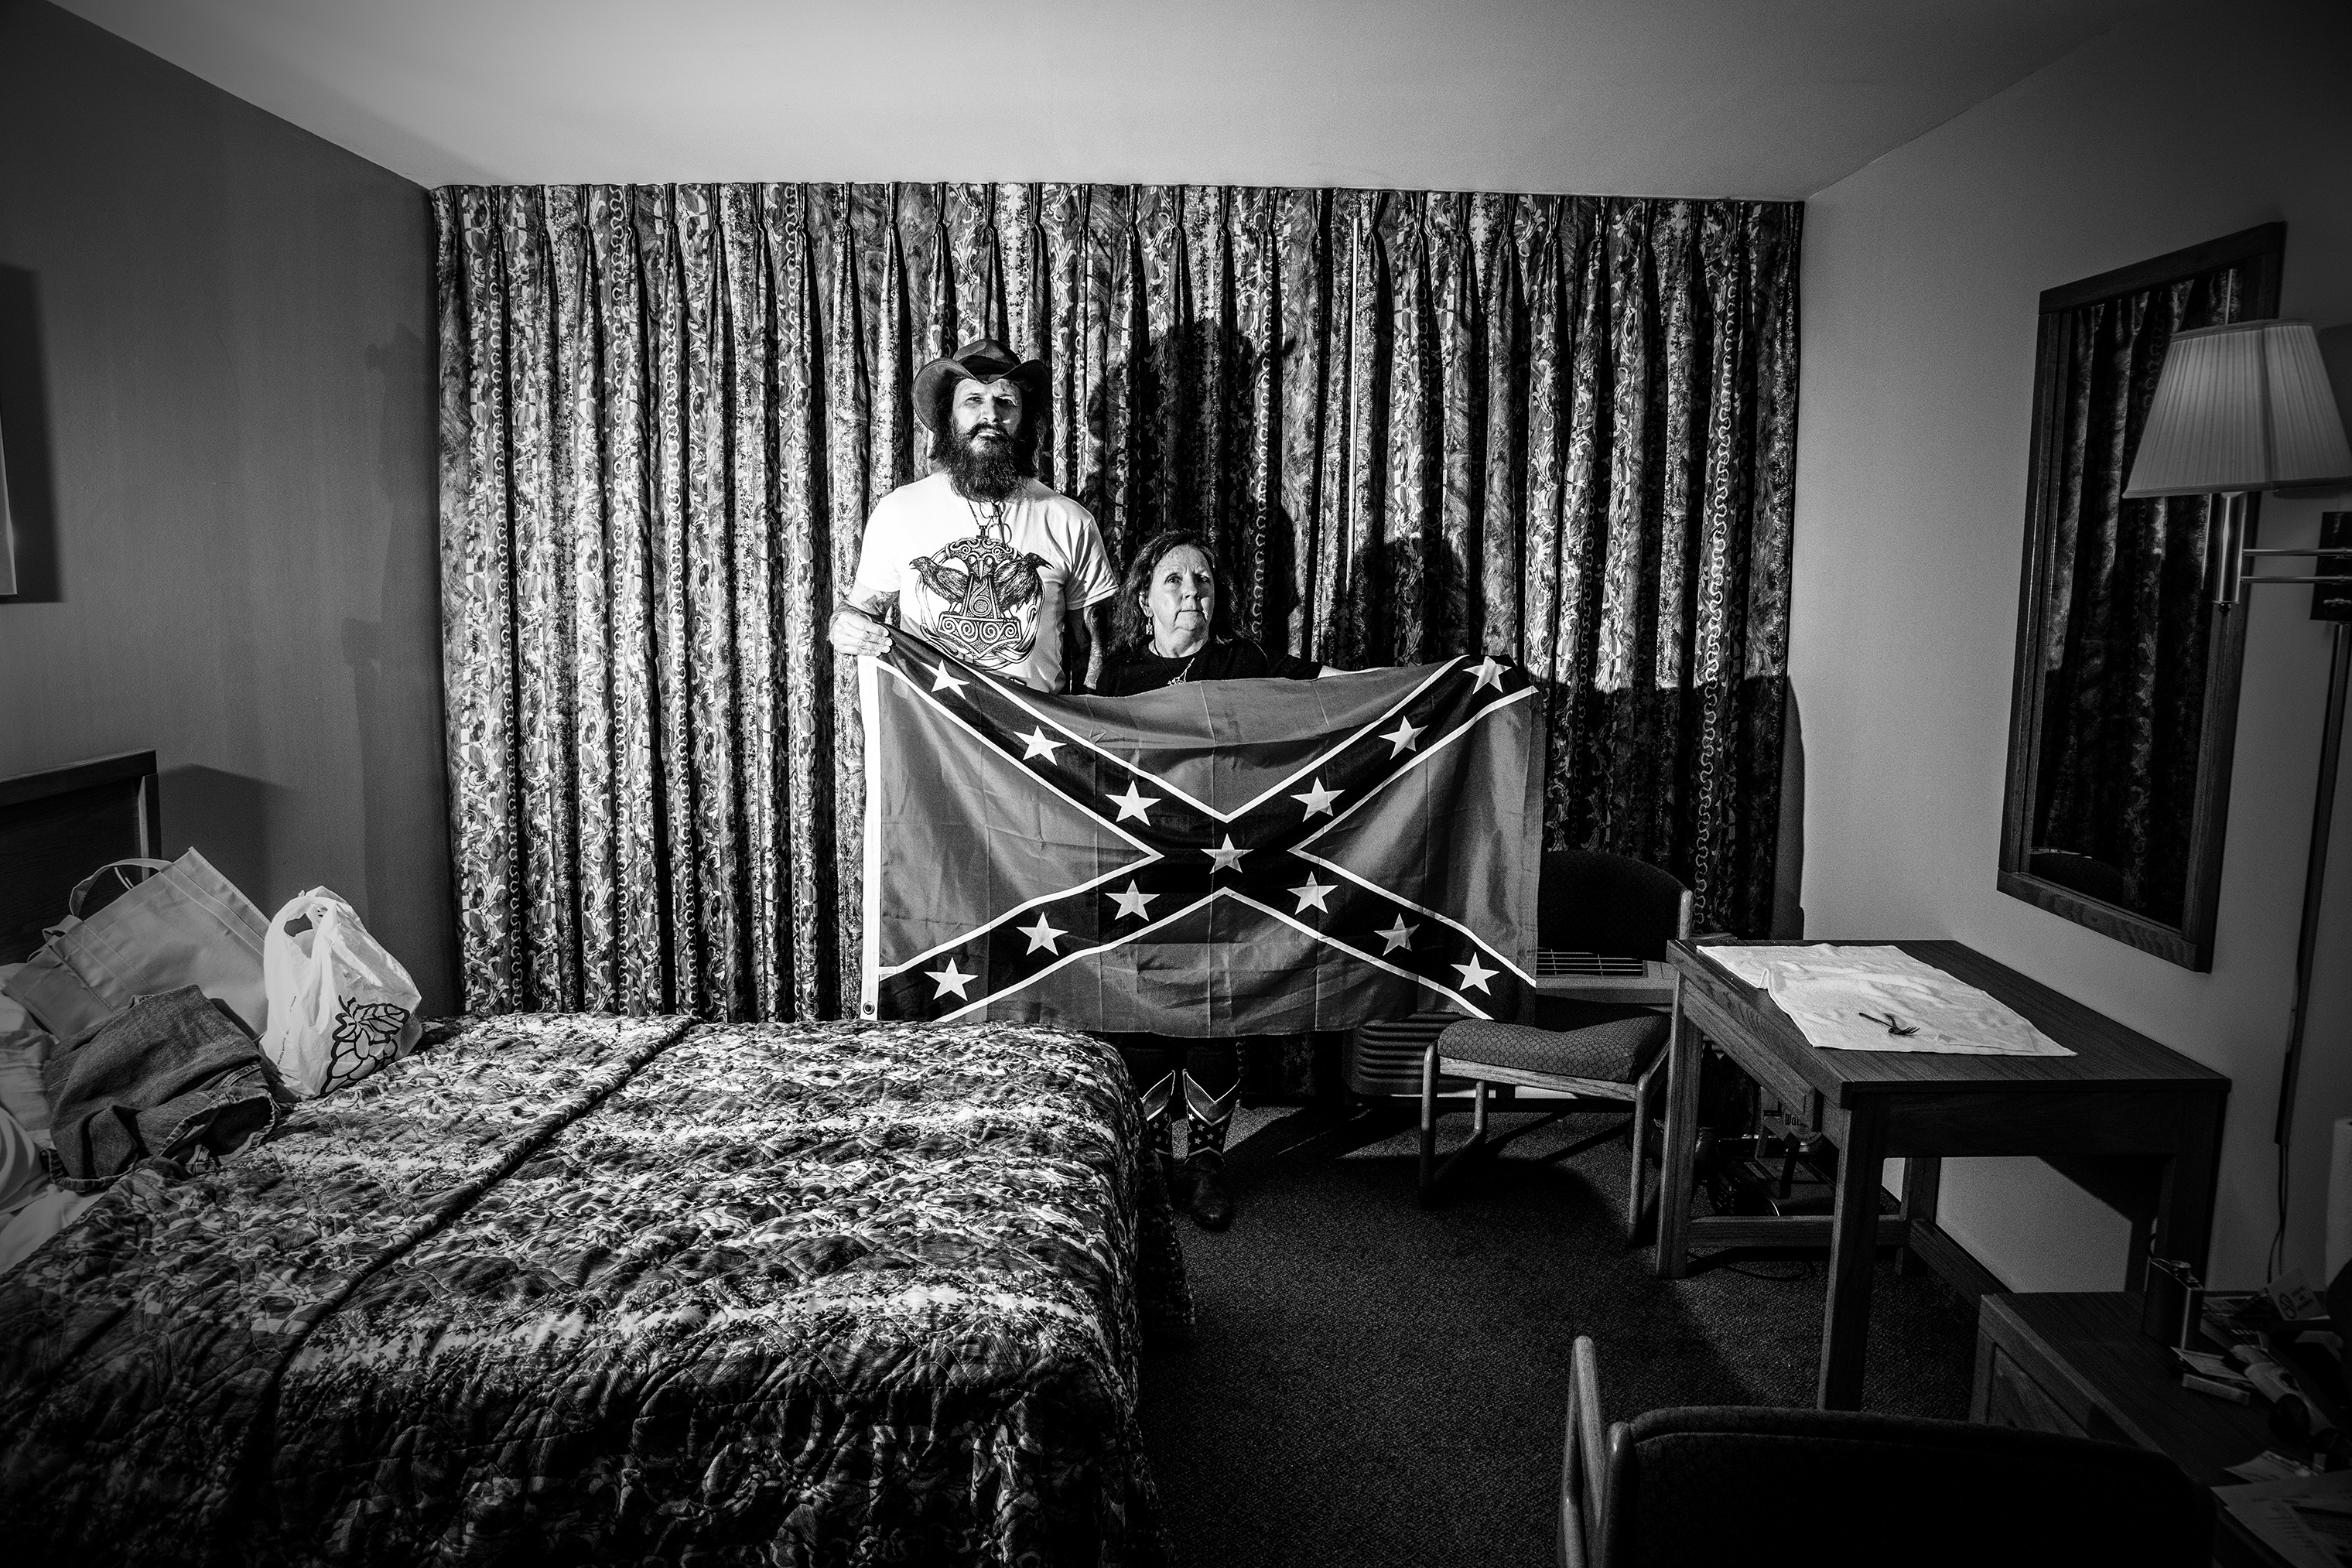 Mr. and Mrs. McDonald pose with a Confederate flag in their hotel room while attending the American Freedom Party and Council of Conservative Citizens conference in Nashville, a conference attended by white nationalist supporters and white supremacists, on June 16, 2018.